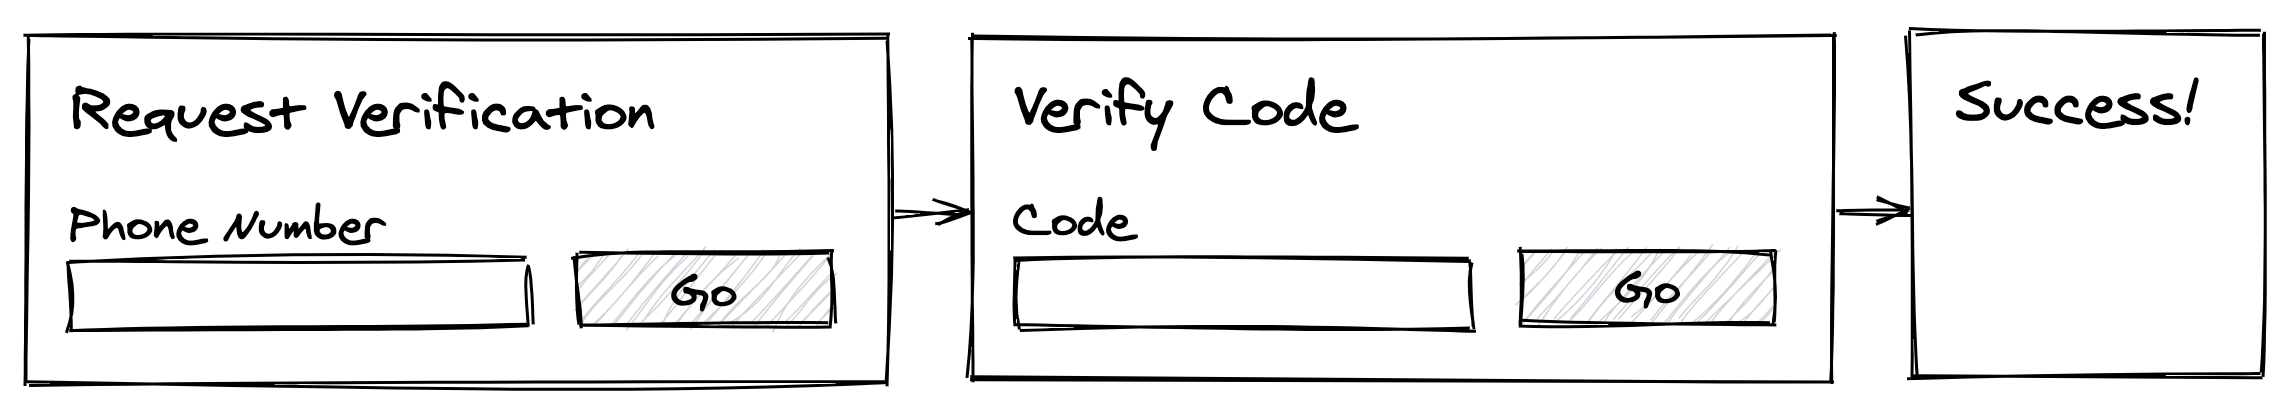 The first diagram shows a page that asks for a phone number and has a button. The second diagram shows a code entry form and a cancel button. The third is a success page.